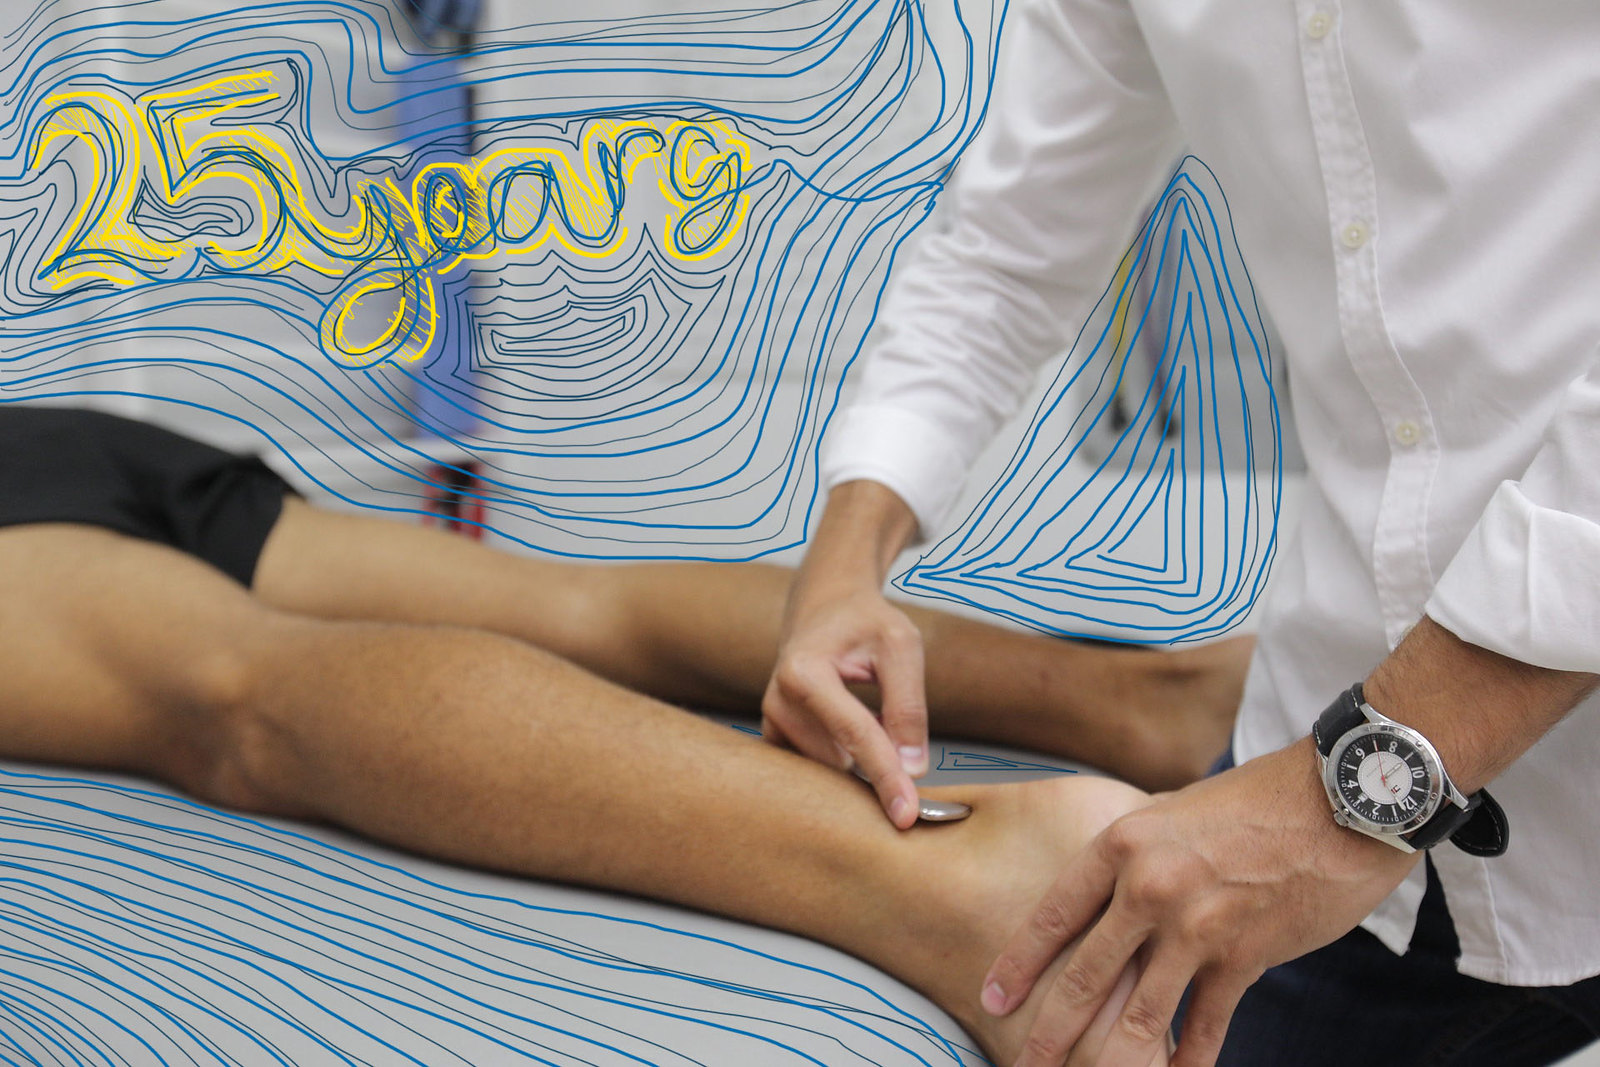 UD Physical Therapy Clinic celebrates 25 years